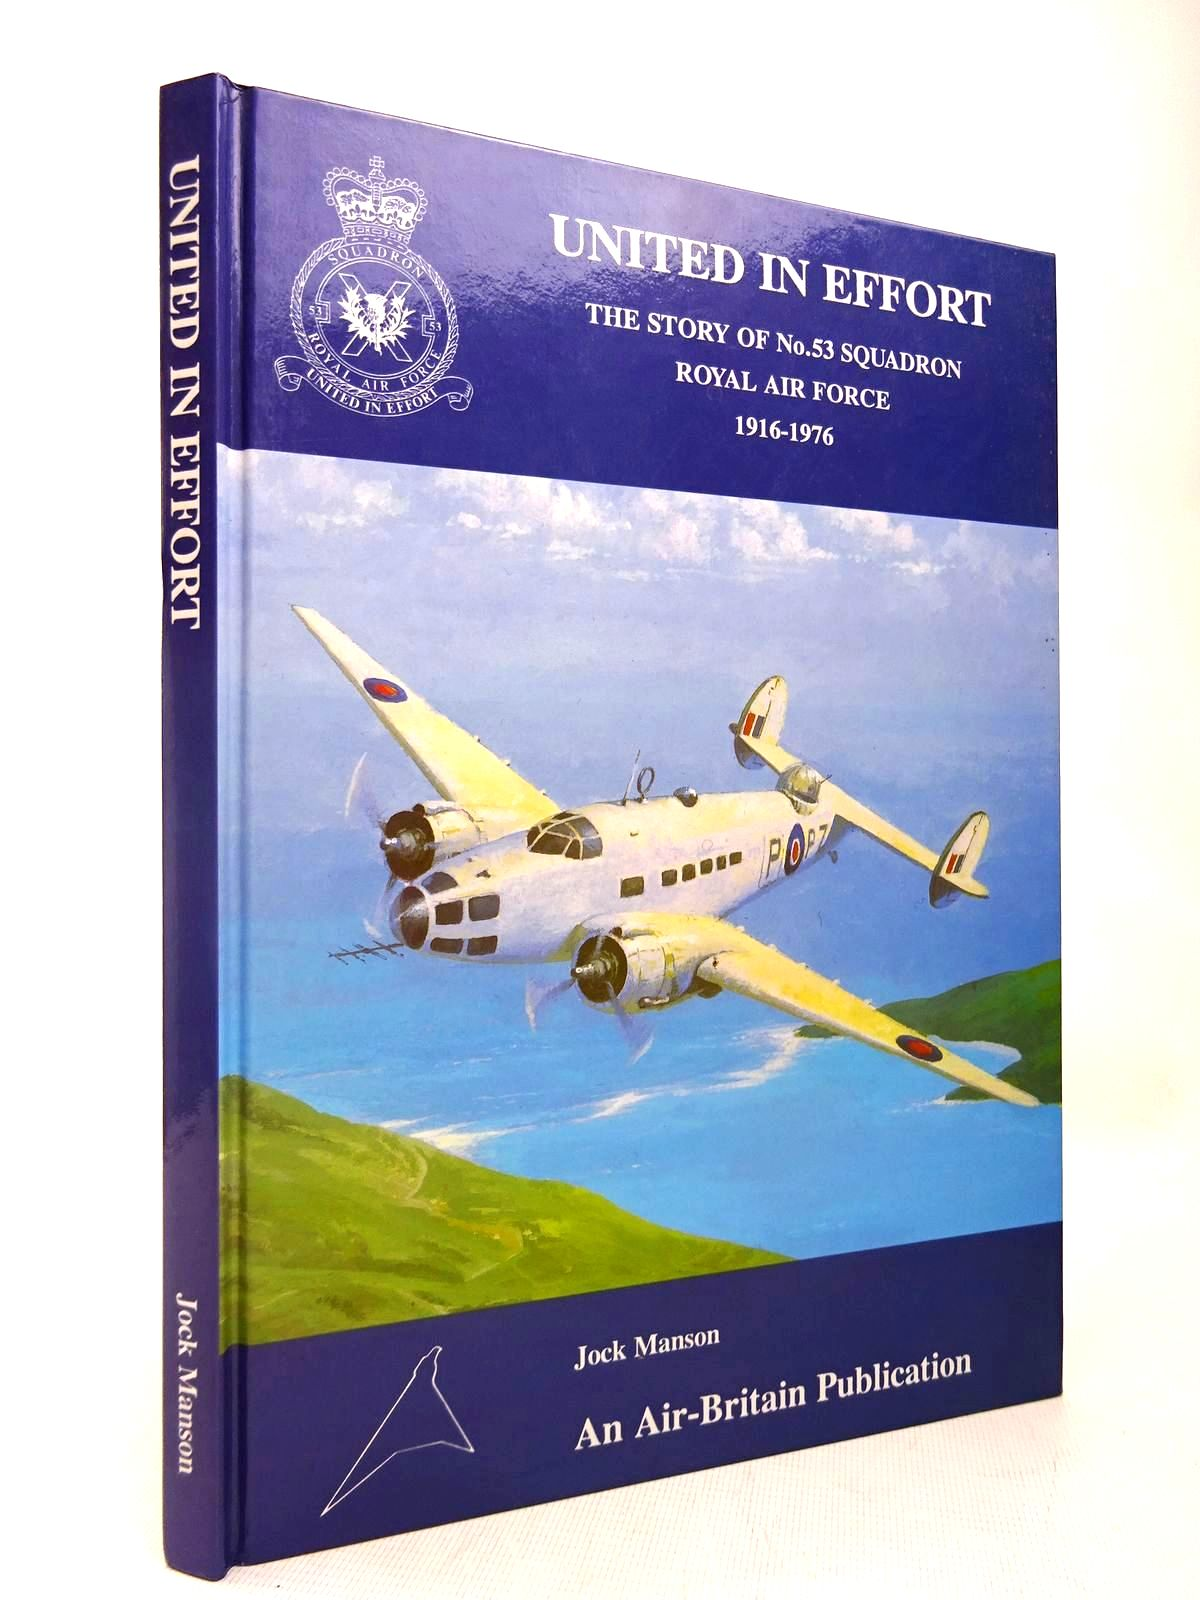 Photo of UNITED IN EFFORT: THE STORY OF No.53 SQUADRON ROYAL AIR FORCE 1916-1976 written by Manson, Jock published by Air Britain (STOCK CODE: 1816438)  for sale by Stella & Rose's Books